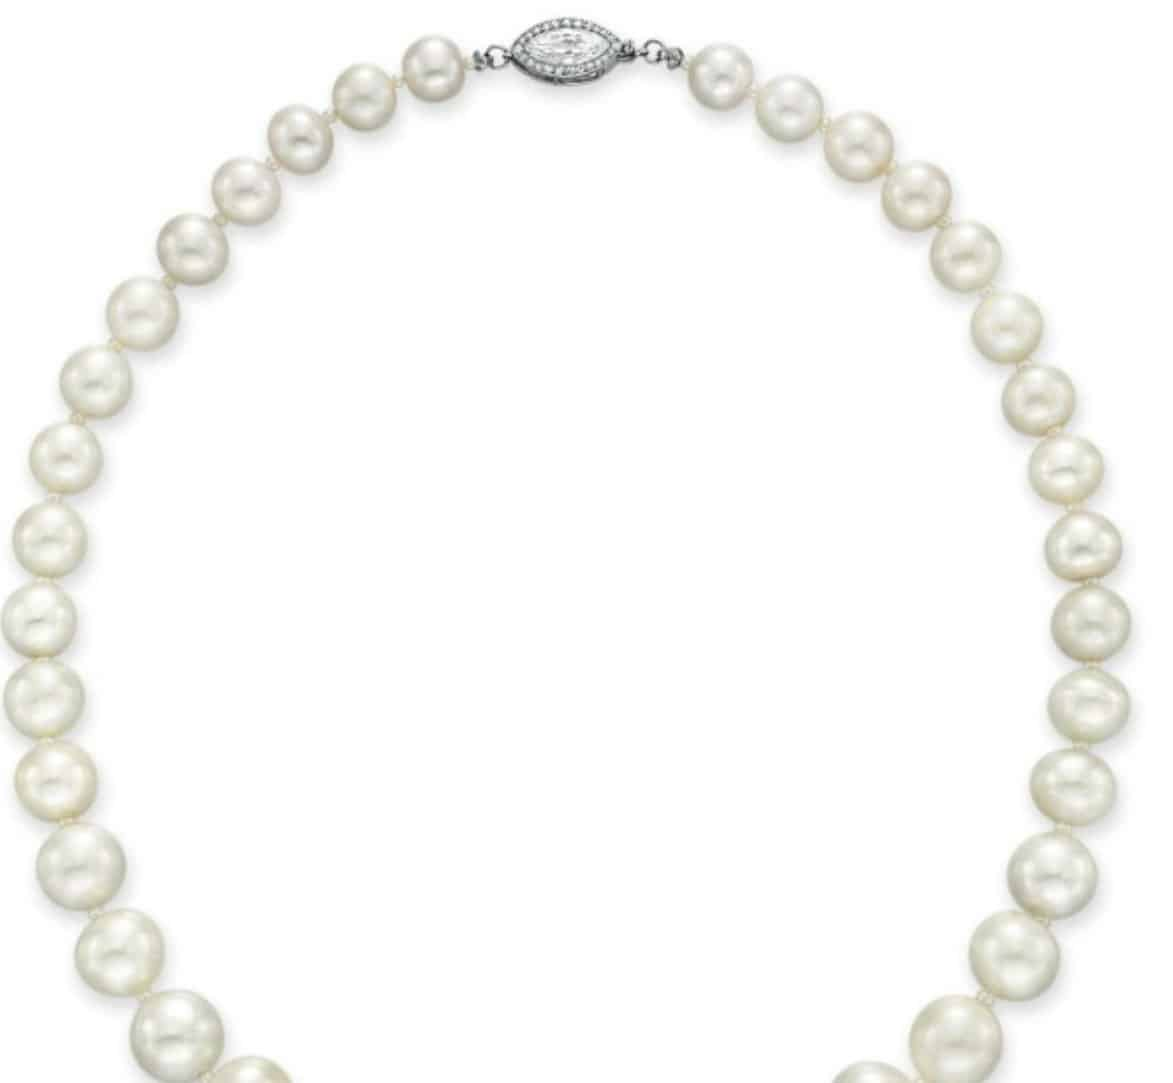 Lot 141 - Rear section of  the Important Single-Strand Natural Pearl and Diamond Necklace